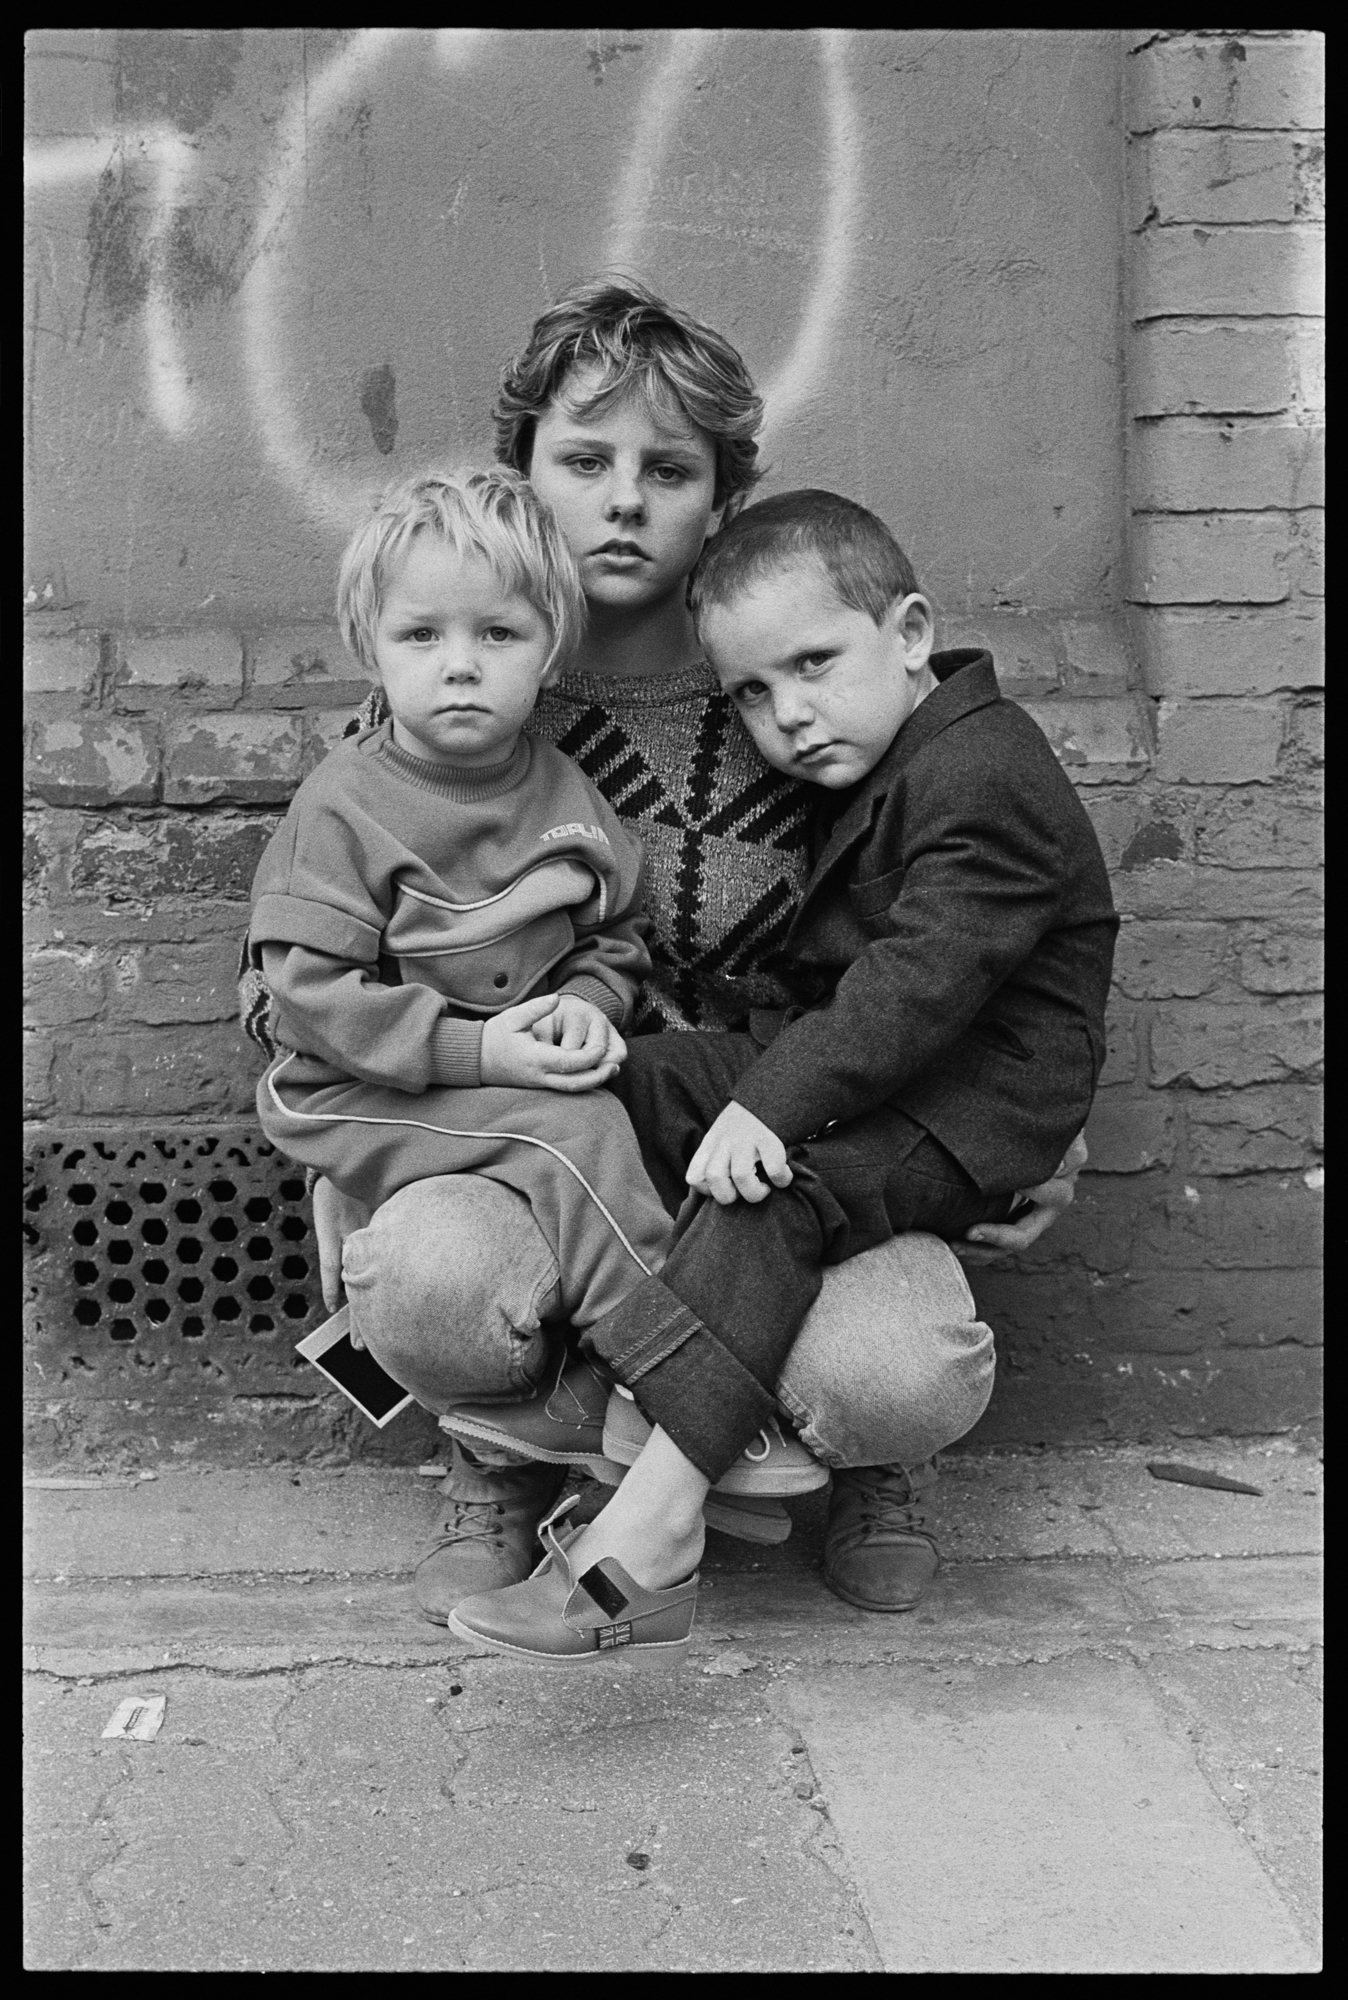 TRAVELLERS' CHILDREN IN LONDON FIELDS